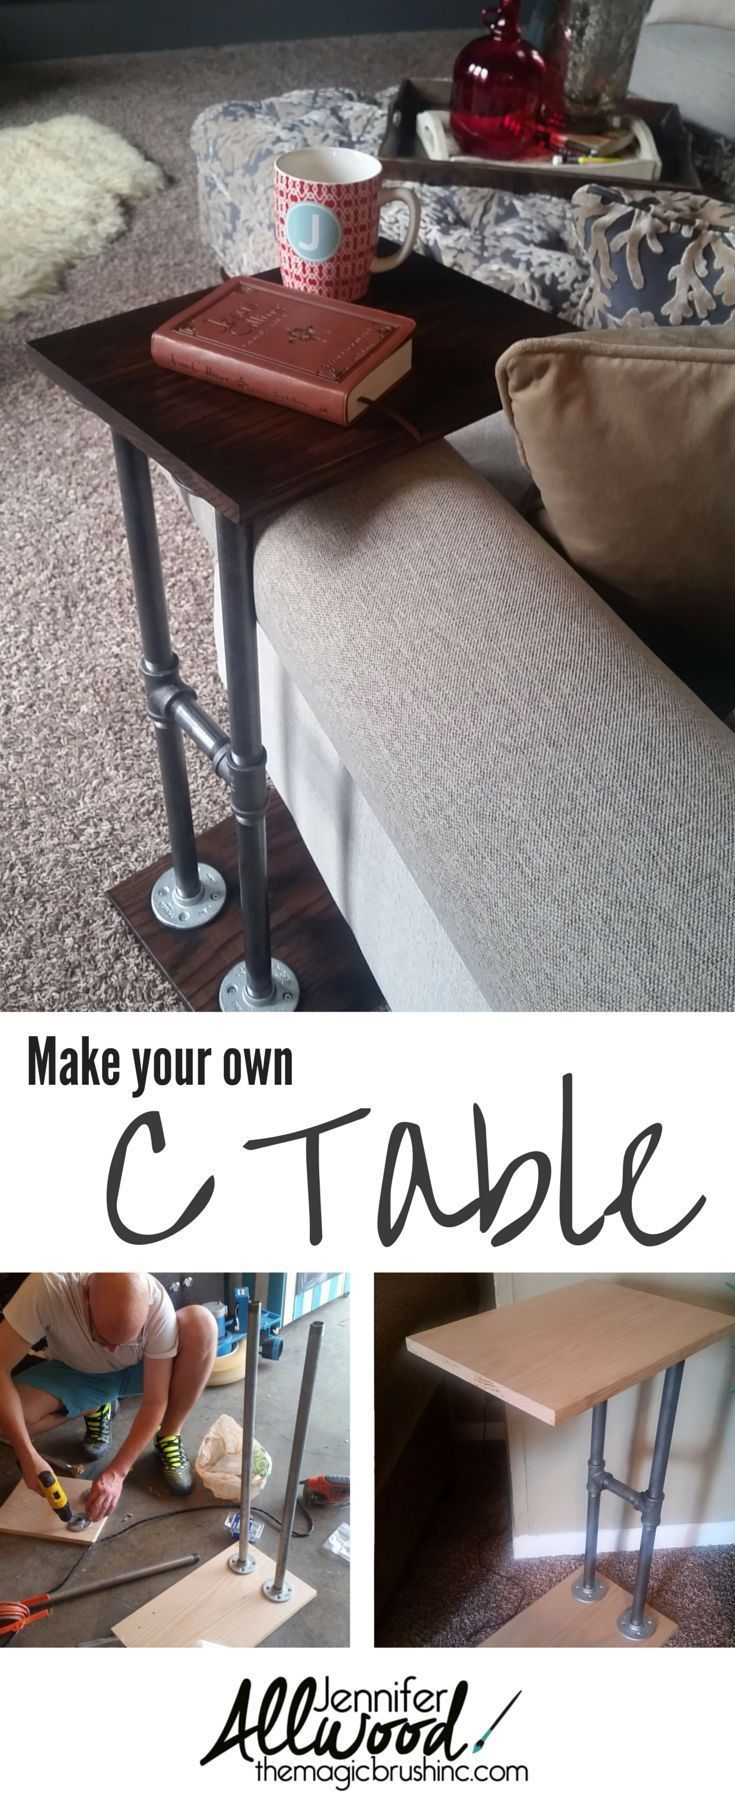 How to's : You'll never have to reach for that coffee mug again!  Make your own C table for armchairs! We used industrial pipes, flanges and stained oak wood pieces. Get instructions from Jennifer Allwood at TheMagicBrushinc.com #diy #diyhomedecor #armchair #homeprojects #howto #homedecor